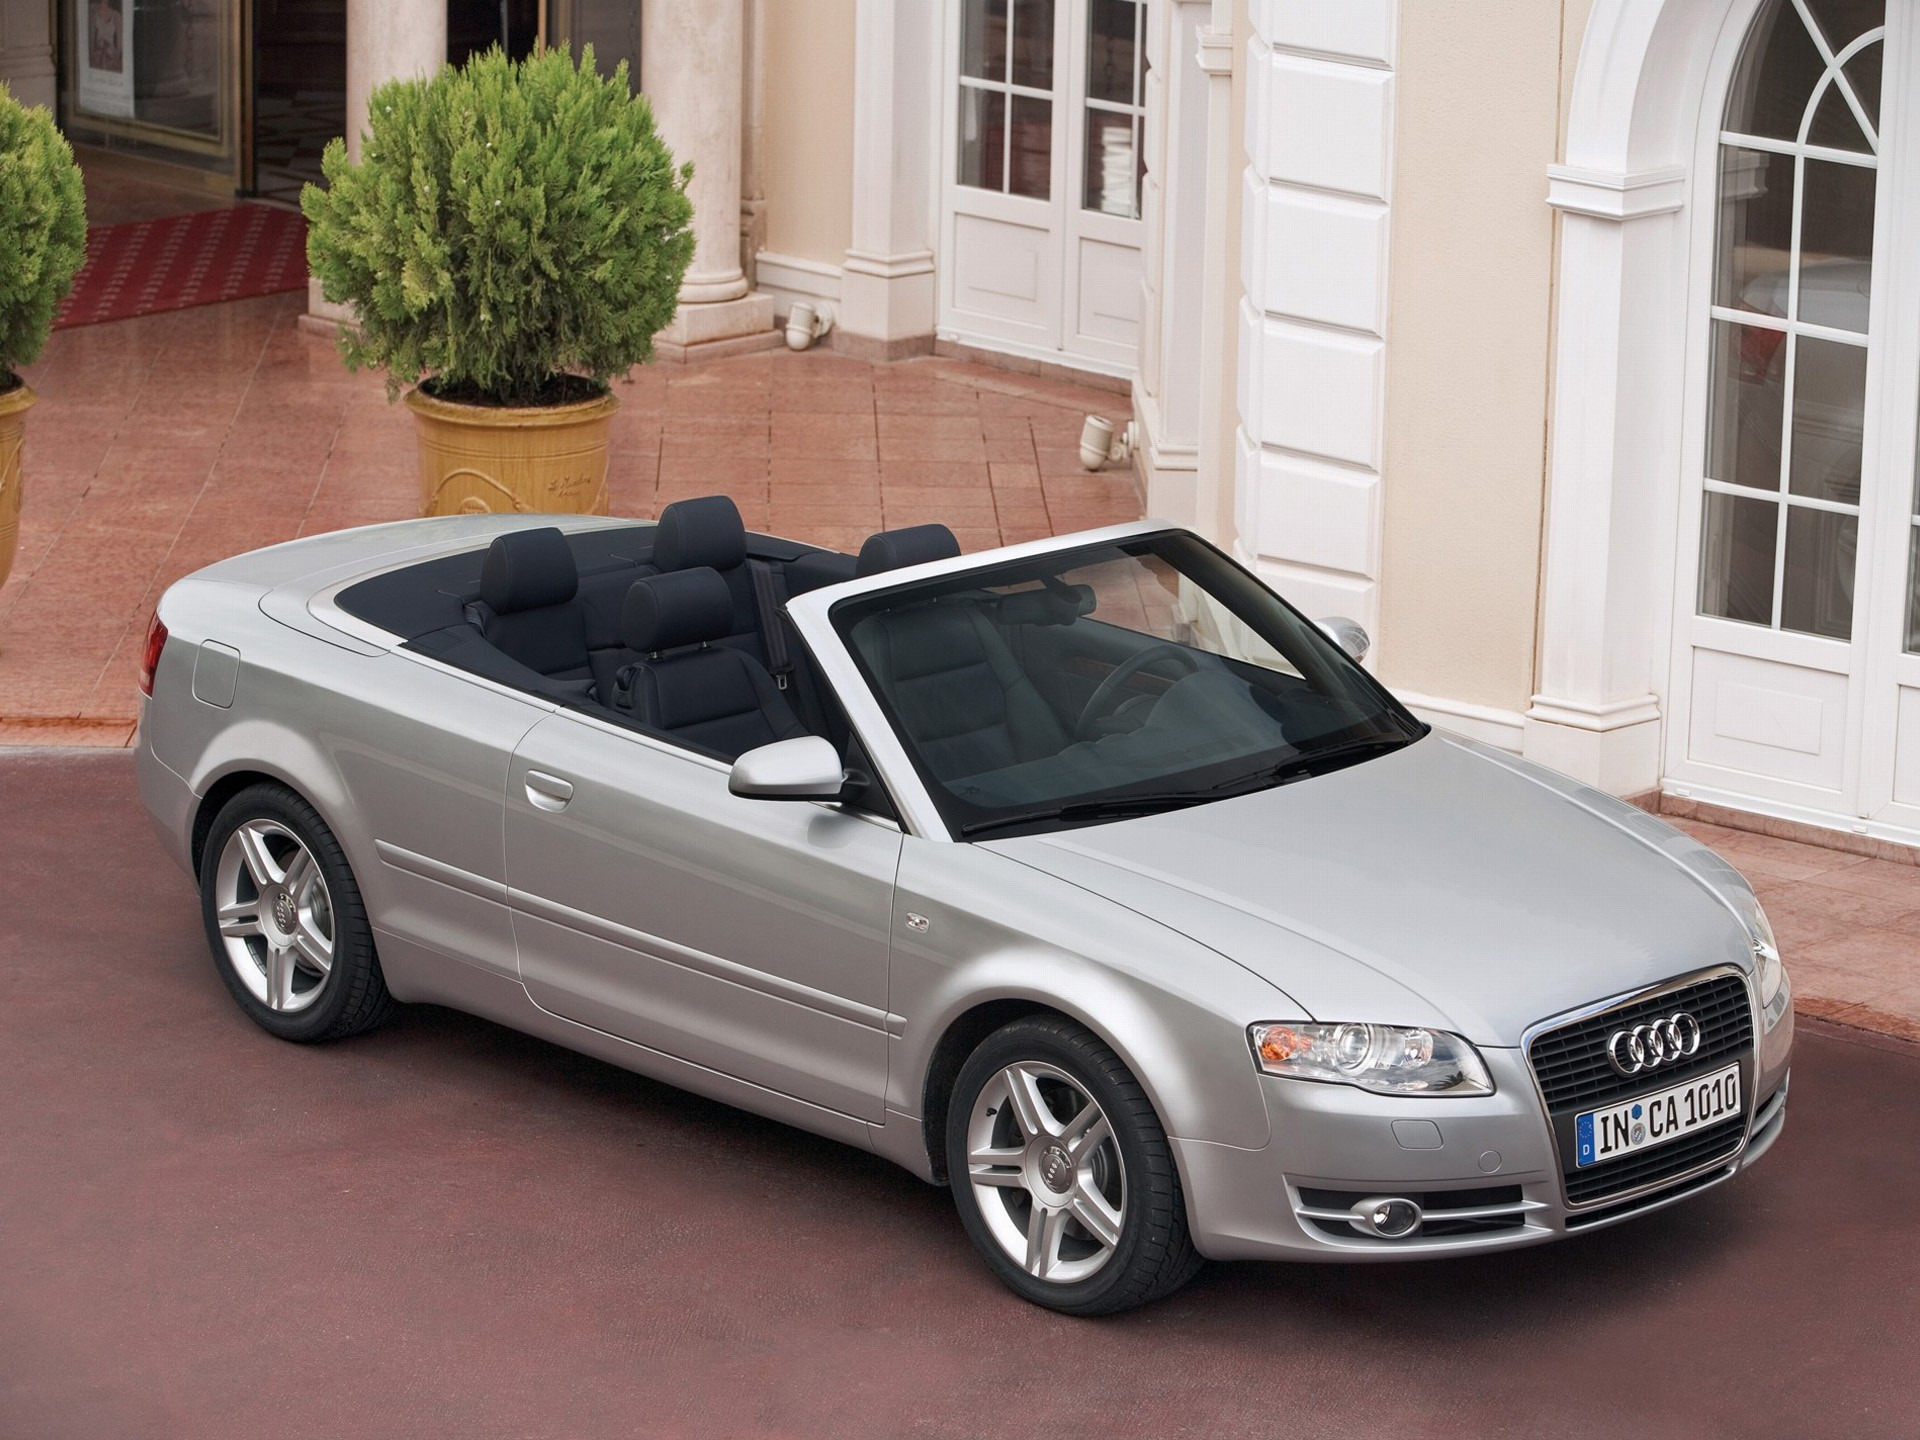 audi rumored to debut a1 cabriolet in 2019 a4 coupe and a4 cabriolet to follow autoevolution. Black Bedroom Furniture Sets. Home Design Ideas